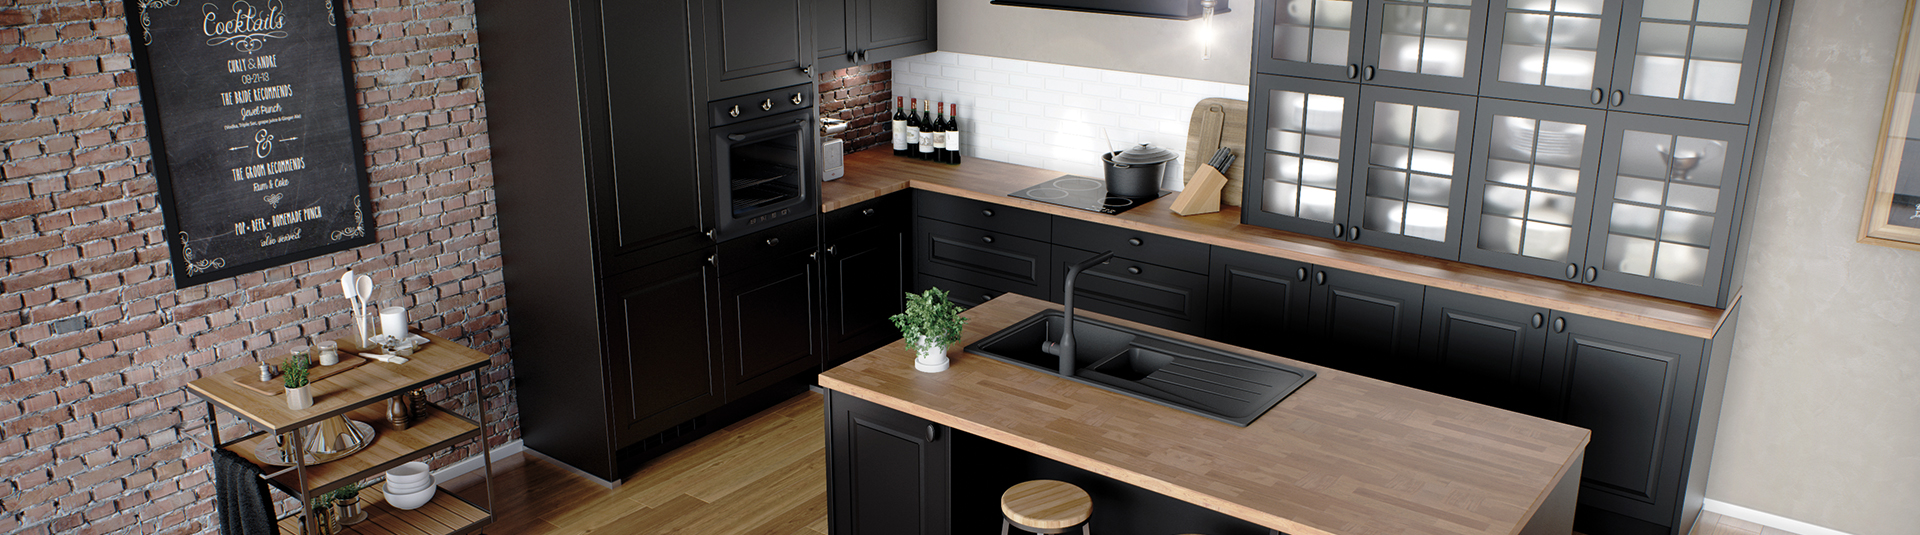 cuisine quip e noire en bois cuisines cottages ggo. Black Bedroom Furniture Sets. Home Design Ideas